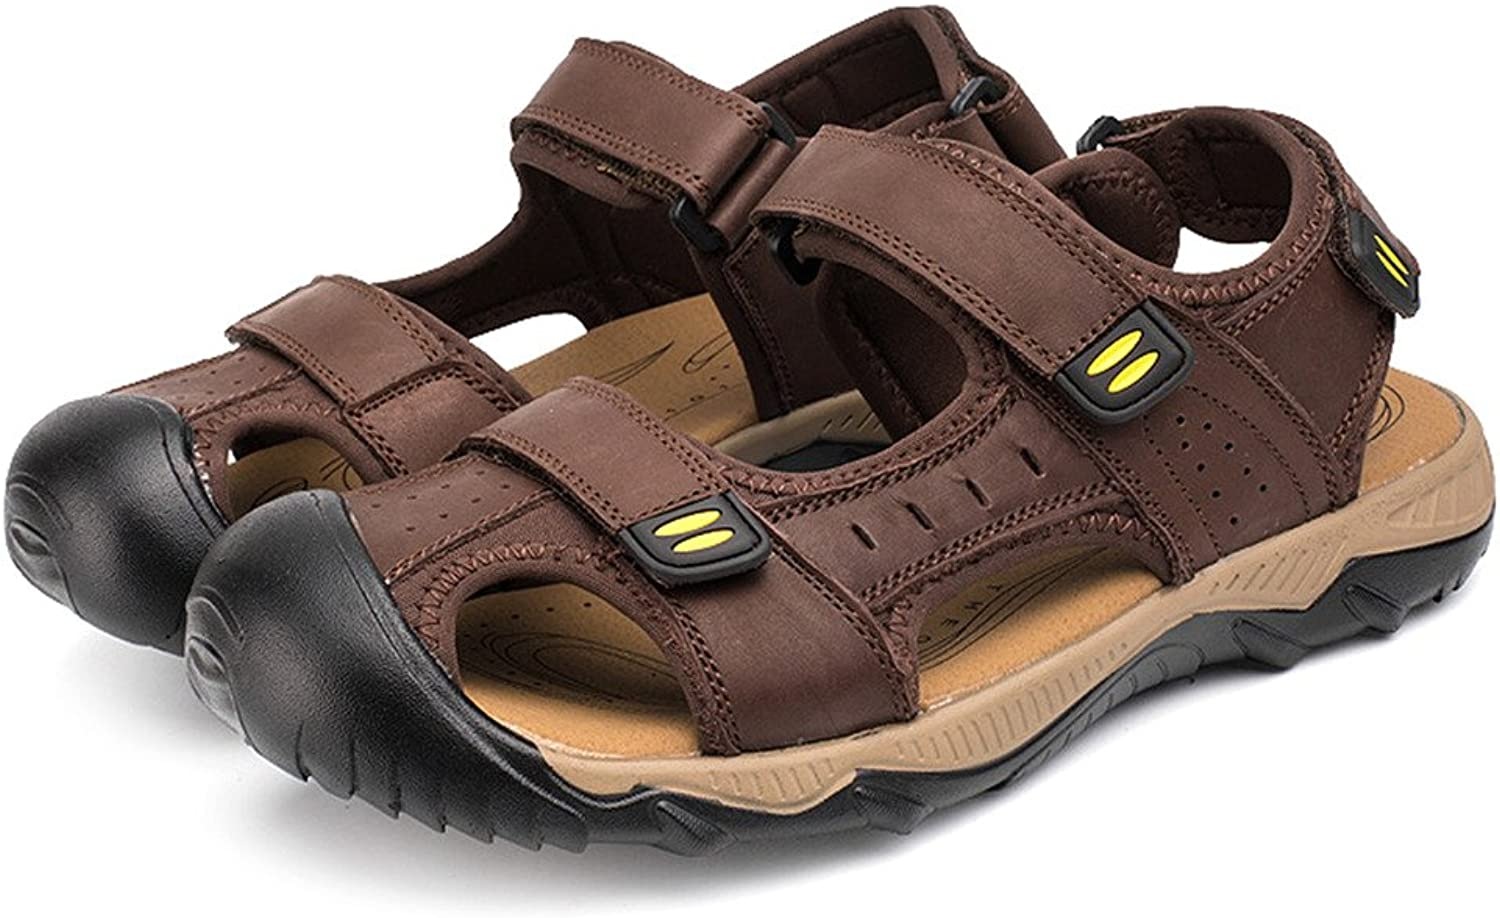 SOGXBUO XW Costume Mens Leather Sandals Athletic Outdoor shoes Summer Beach Mules Velcro Sports Sandals